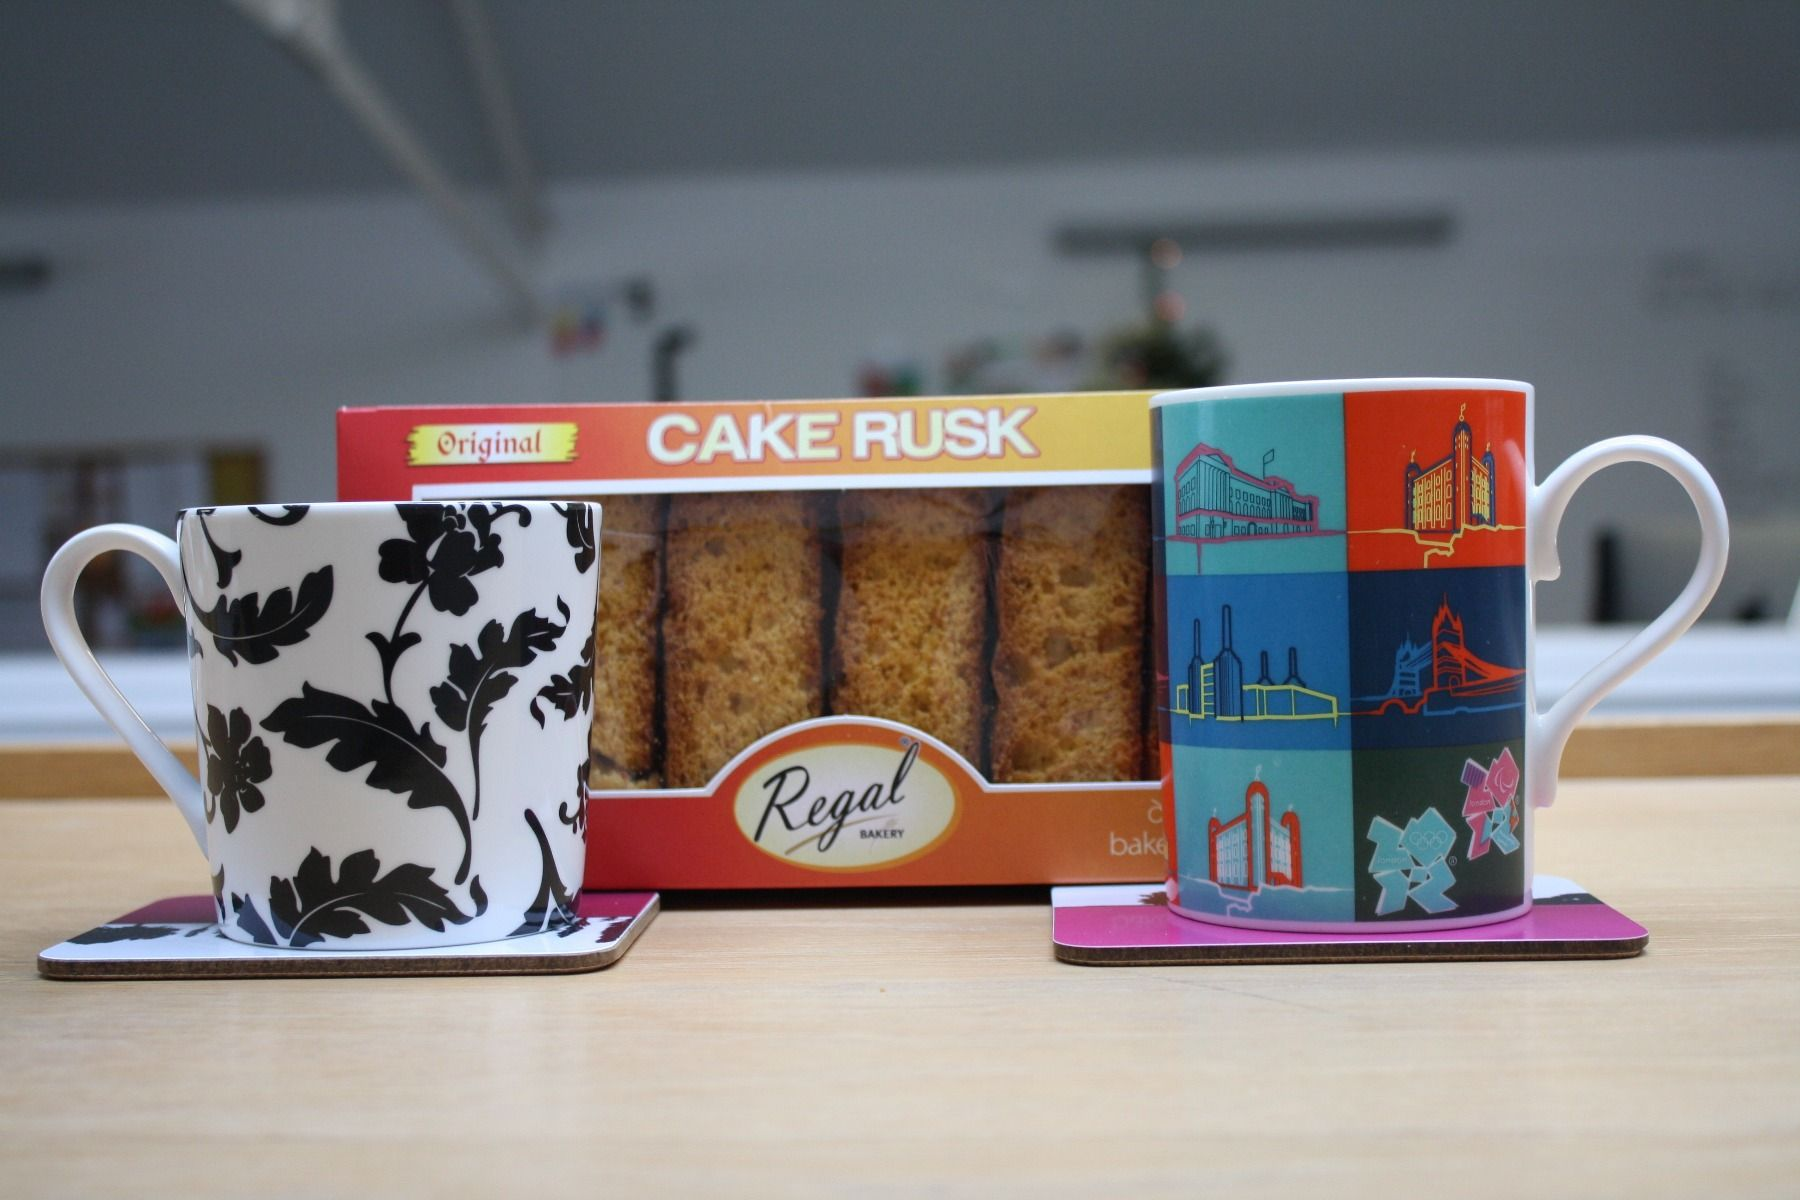 Regal Original Cake Rusks Dunking Challenge